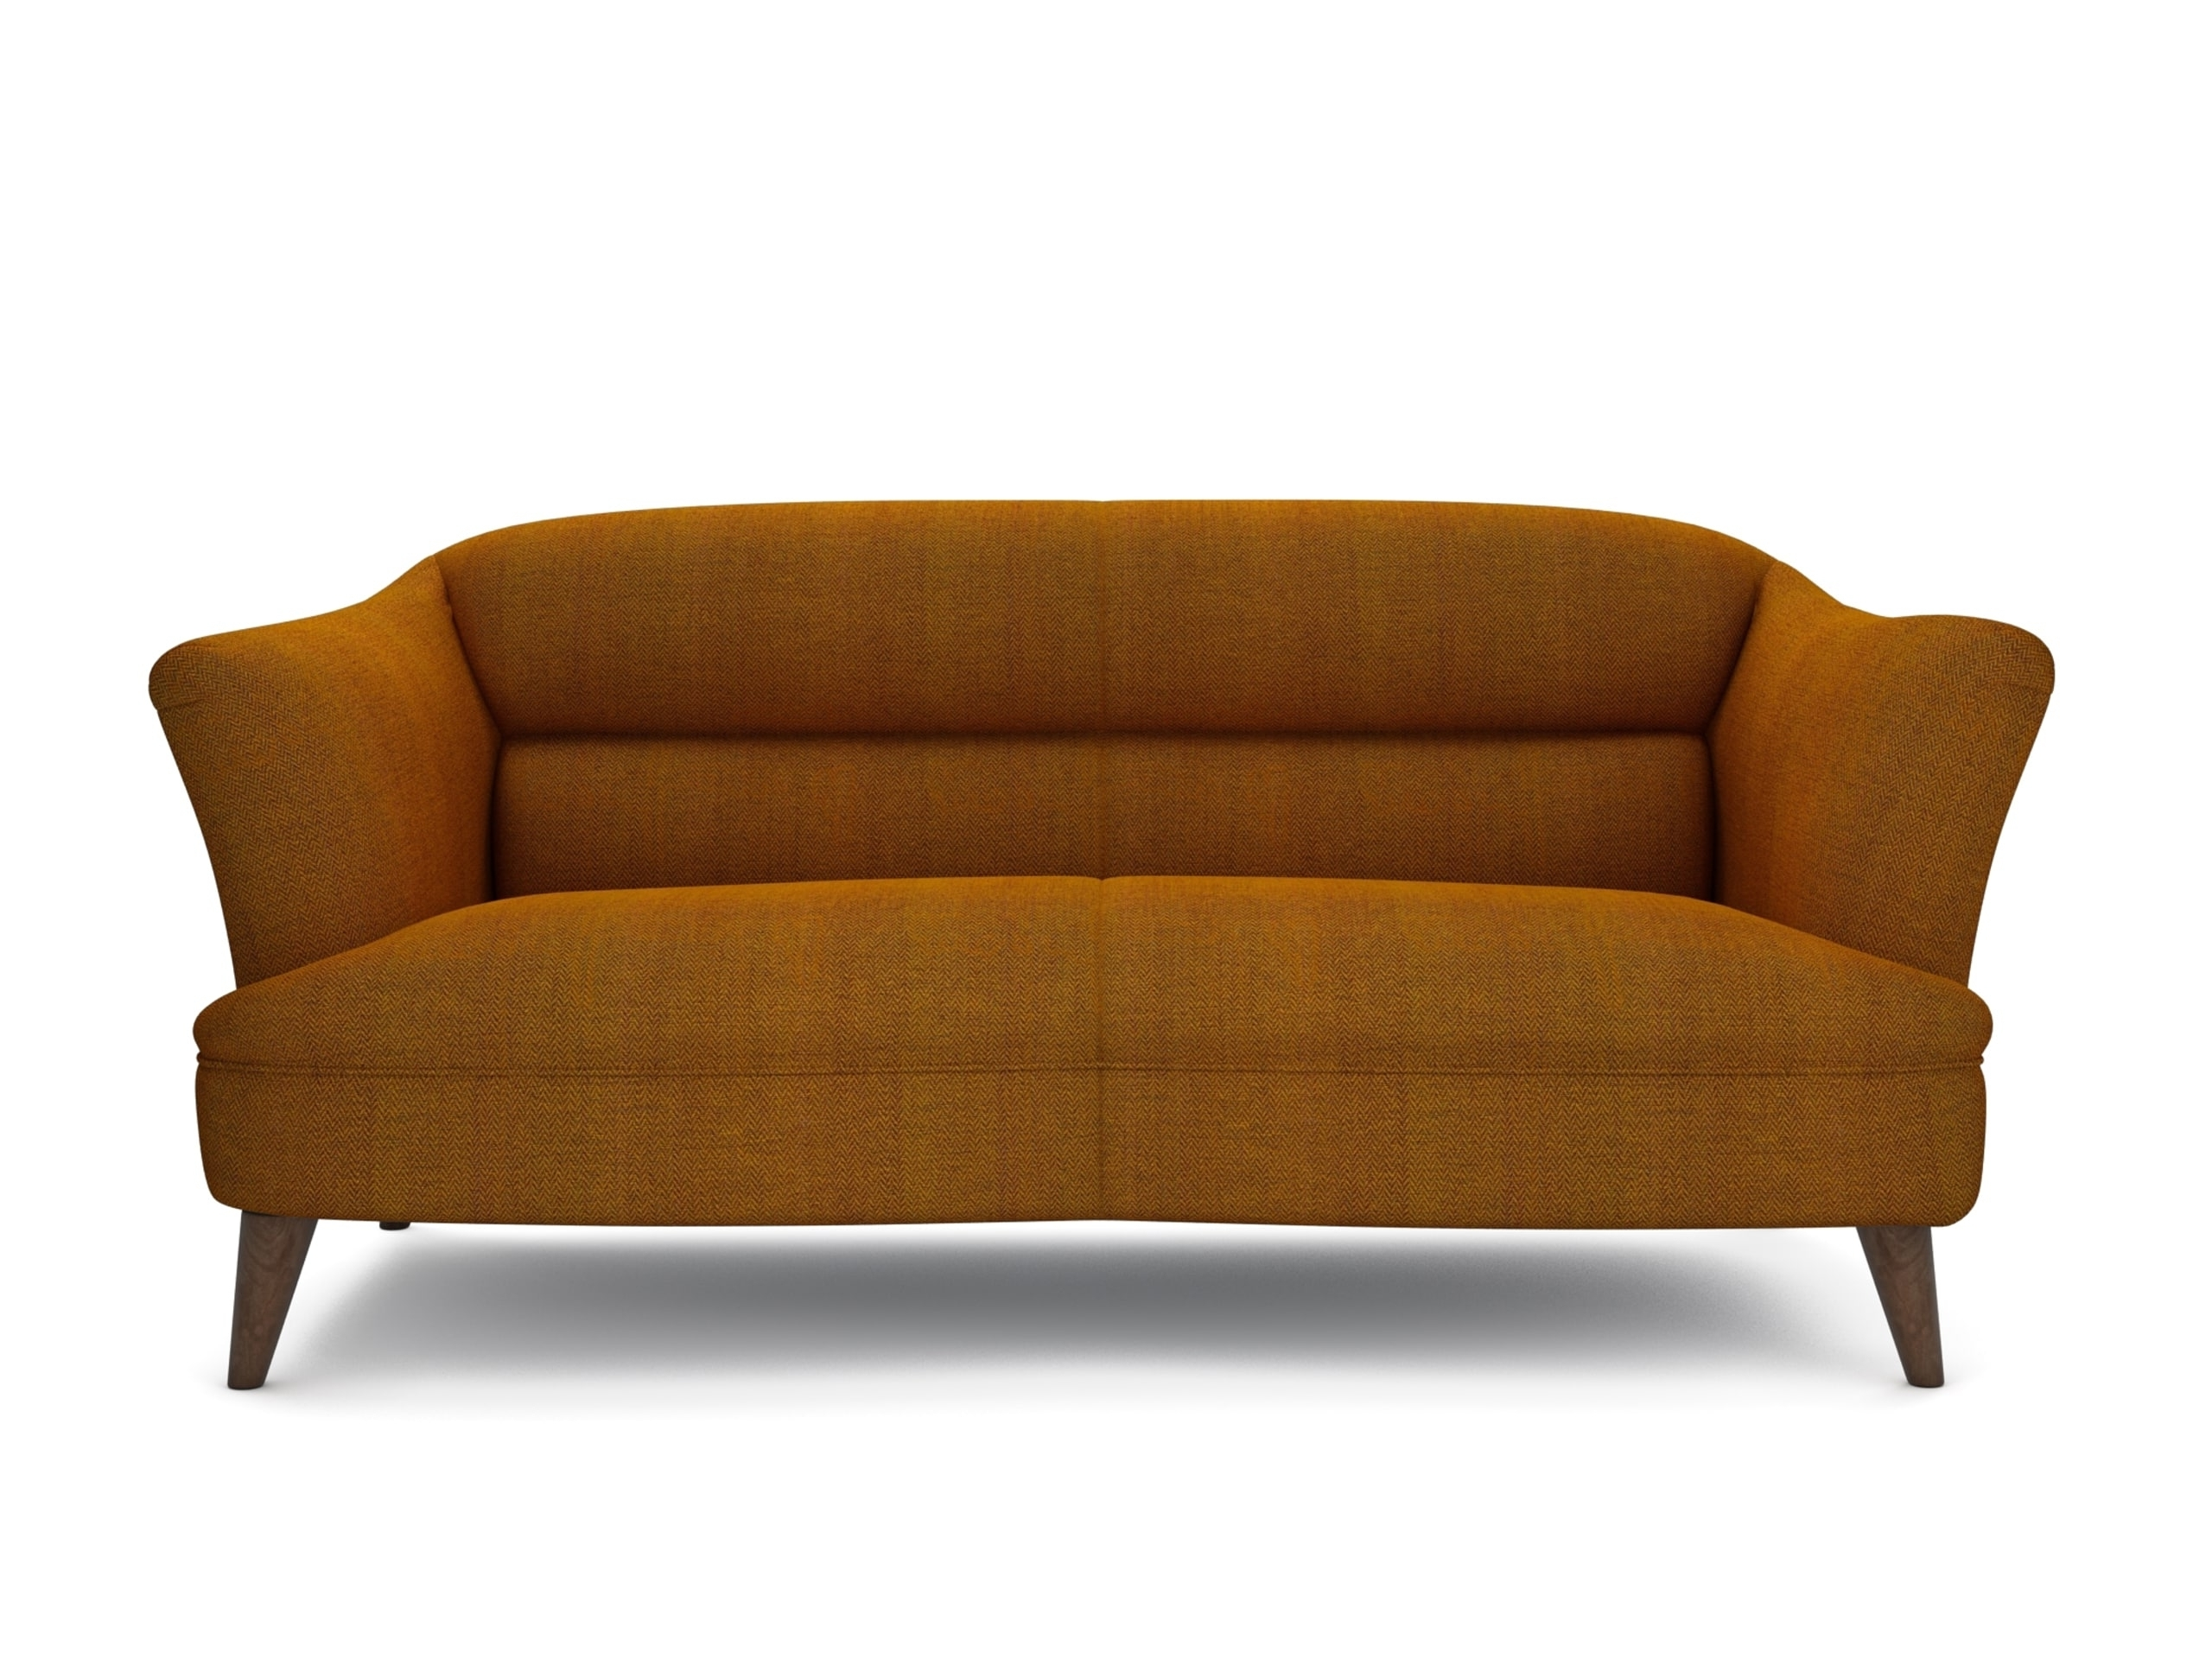 Yellow Chintz Sofas Pertaining To Well Liked Sofa : English Sofas 137 For Sale At 1Stdibs With Chintz Sofas (View 6 of 15)